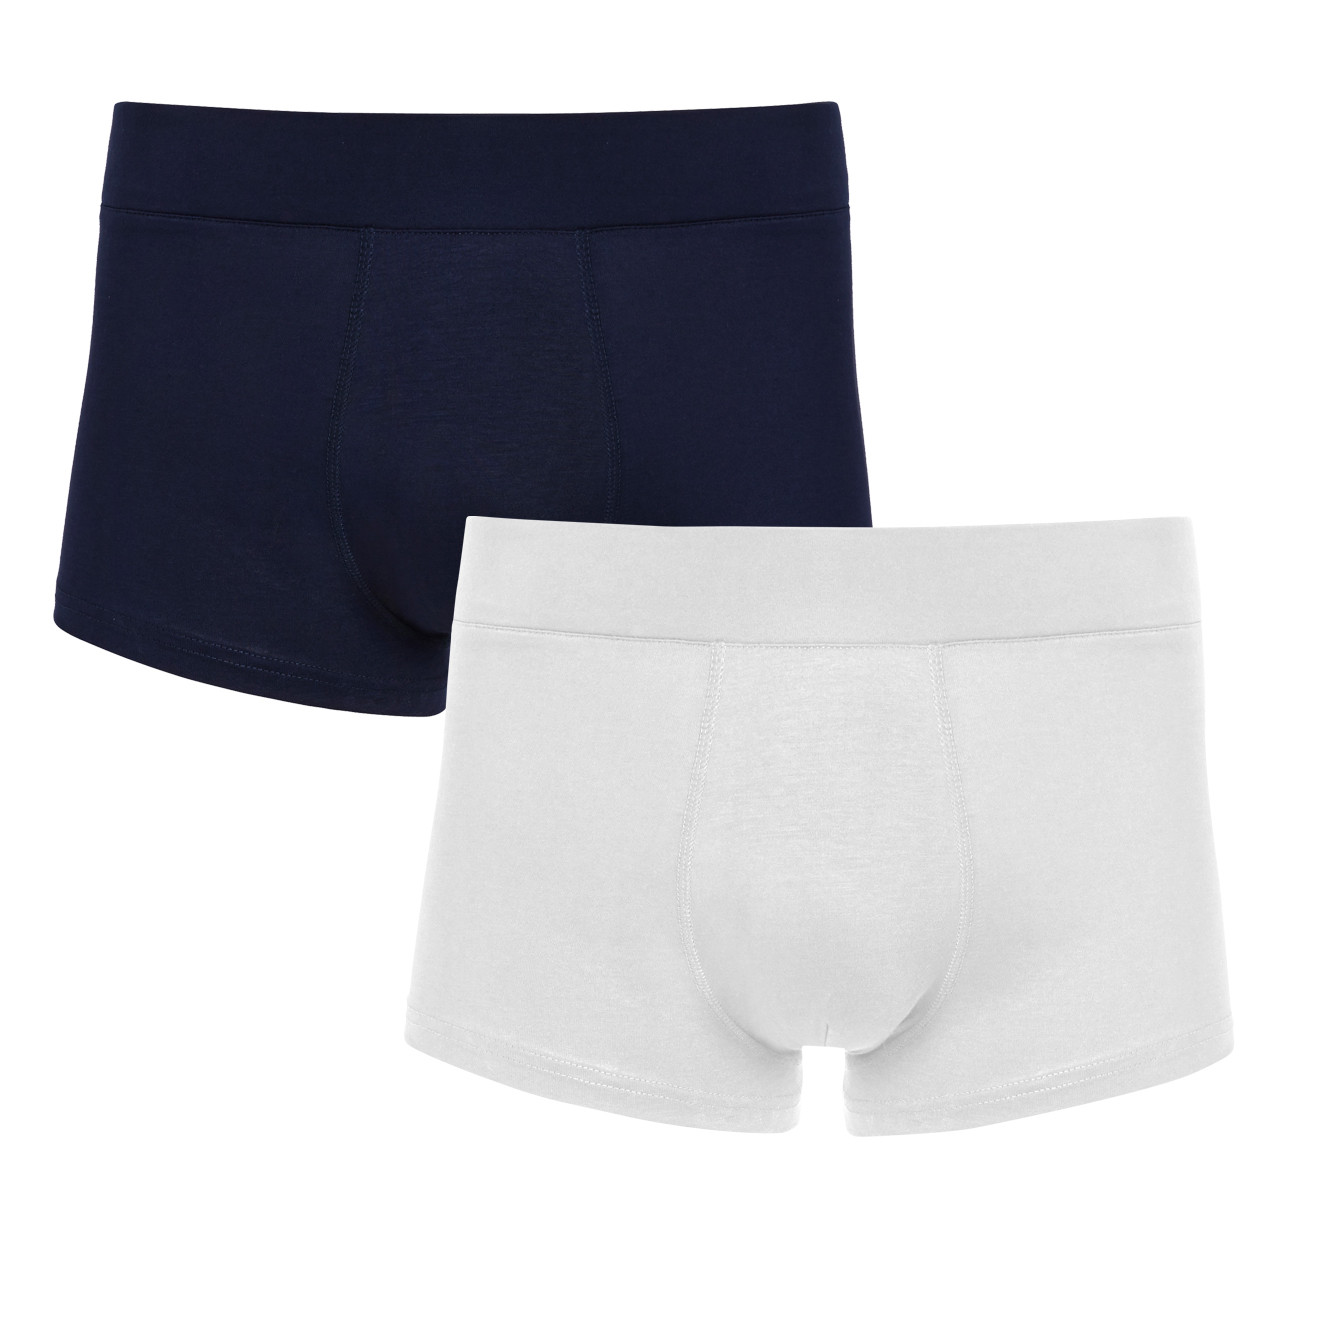 Hamilton and Hare The Jersey Trunk Two Pack